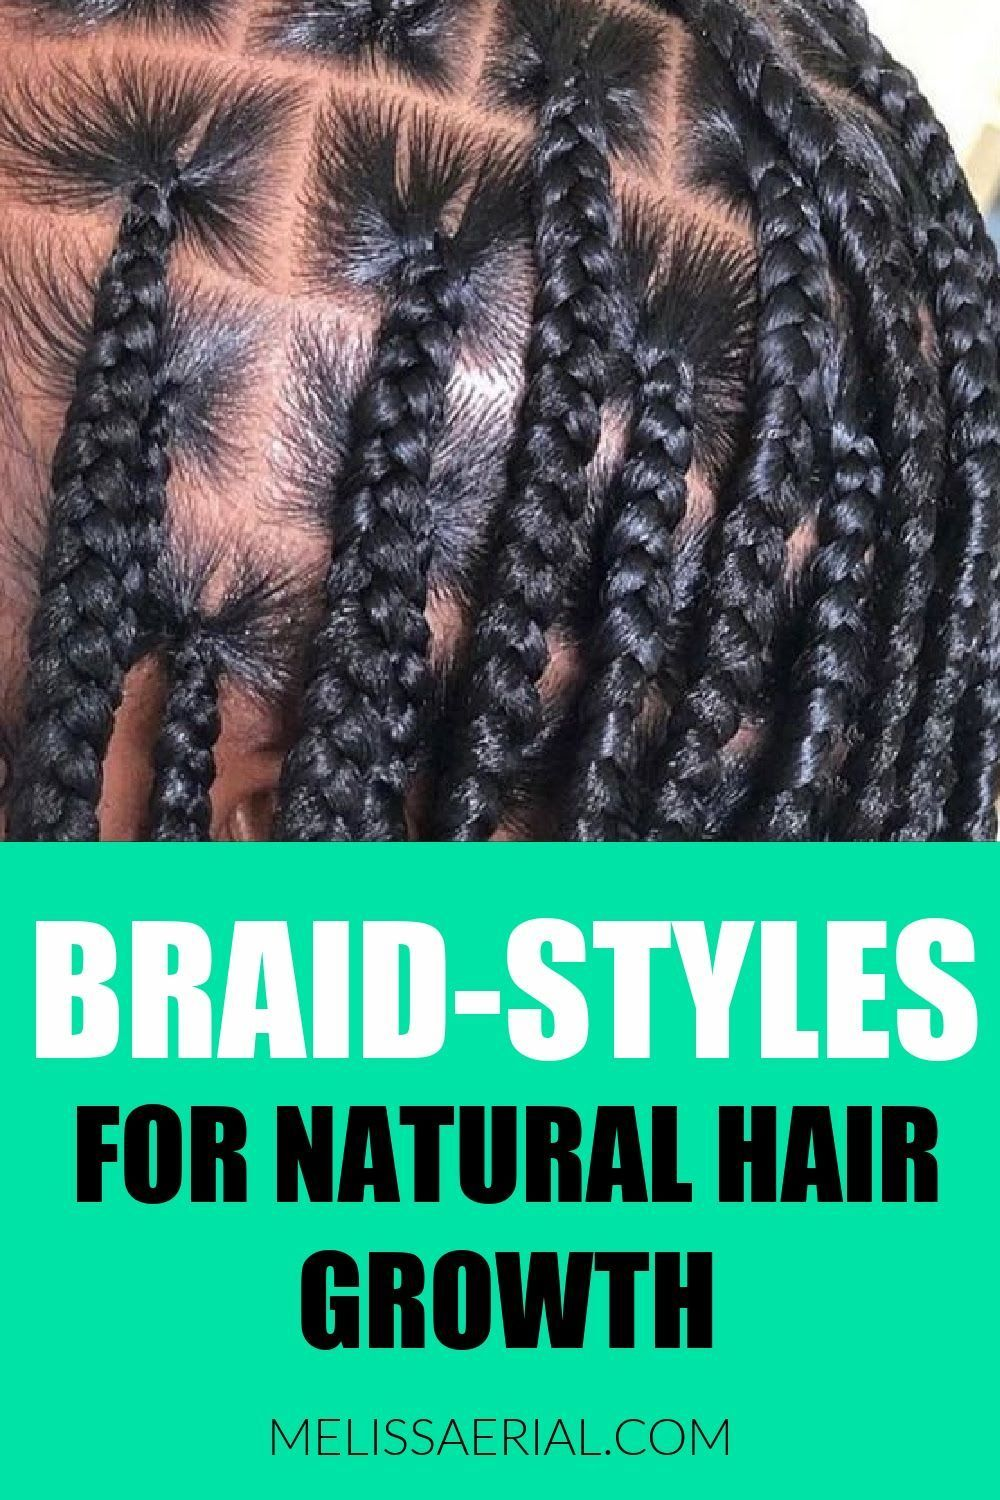 Braid Styles For Natural Hair Growth On All Hair Types For Black Women In 2021 Natural Hair Styles Natural Hair Growth Fast Natural Hair Growth